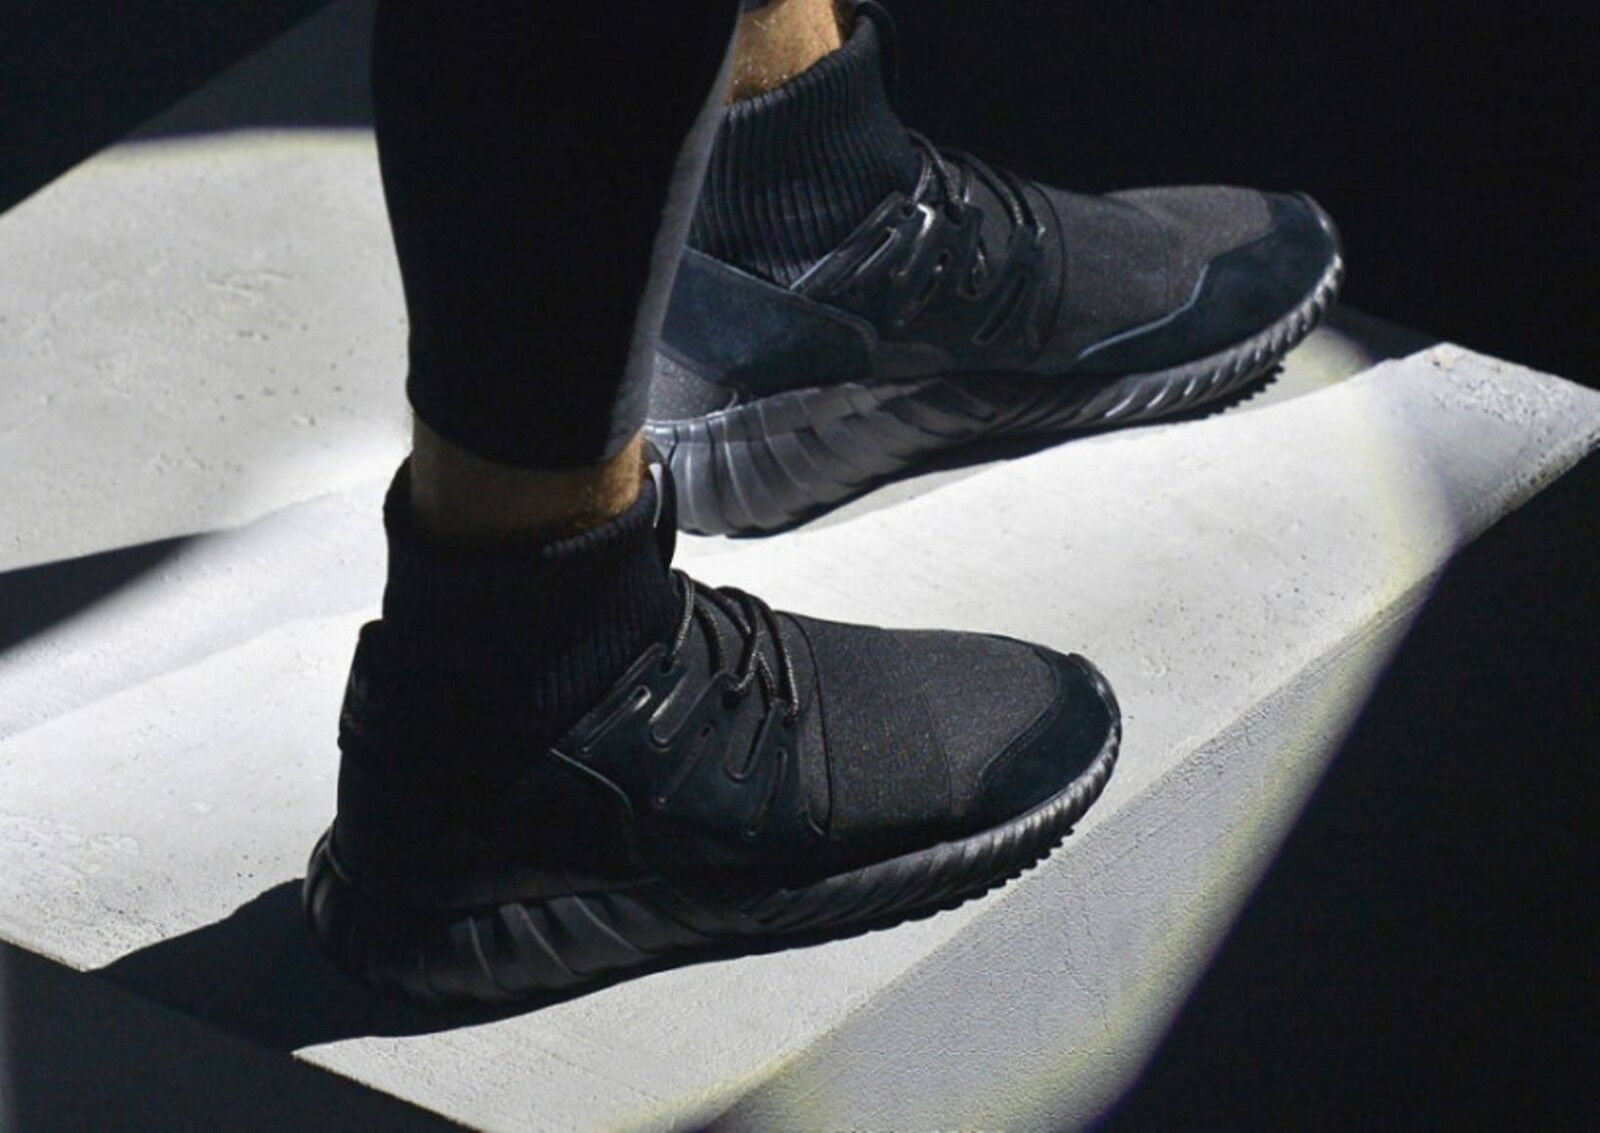 MENS ADIDAS ICON TRAINER noir / WH BASKETBALL chaussures homme SELECT YOUR Taille